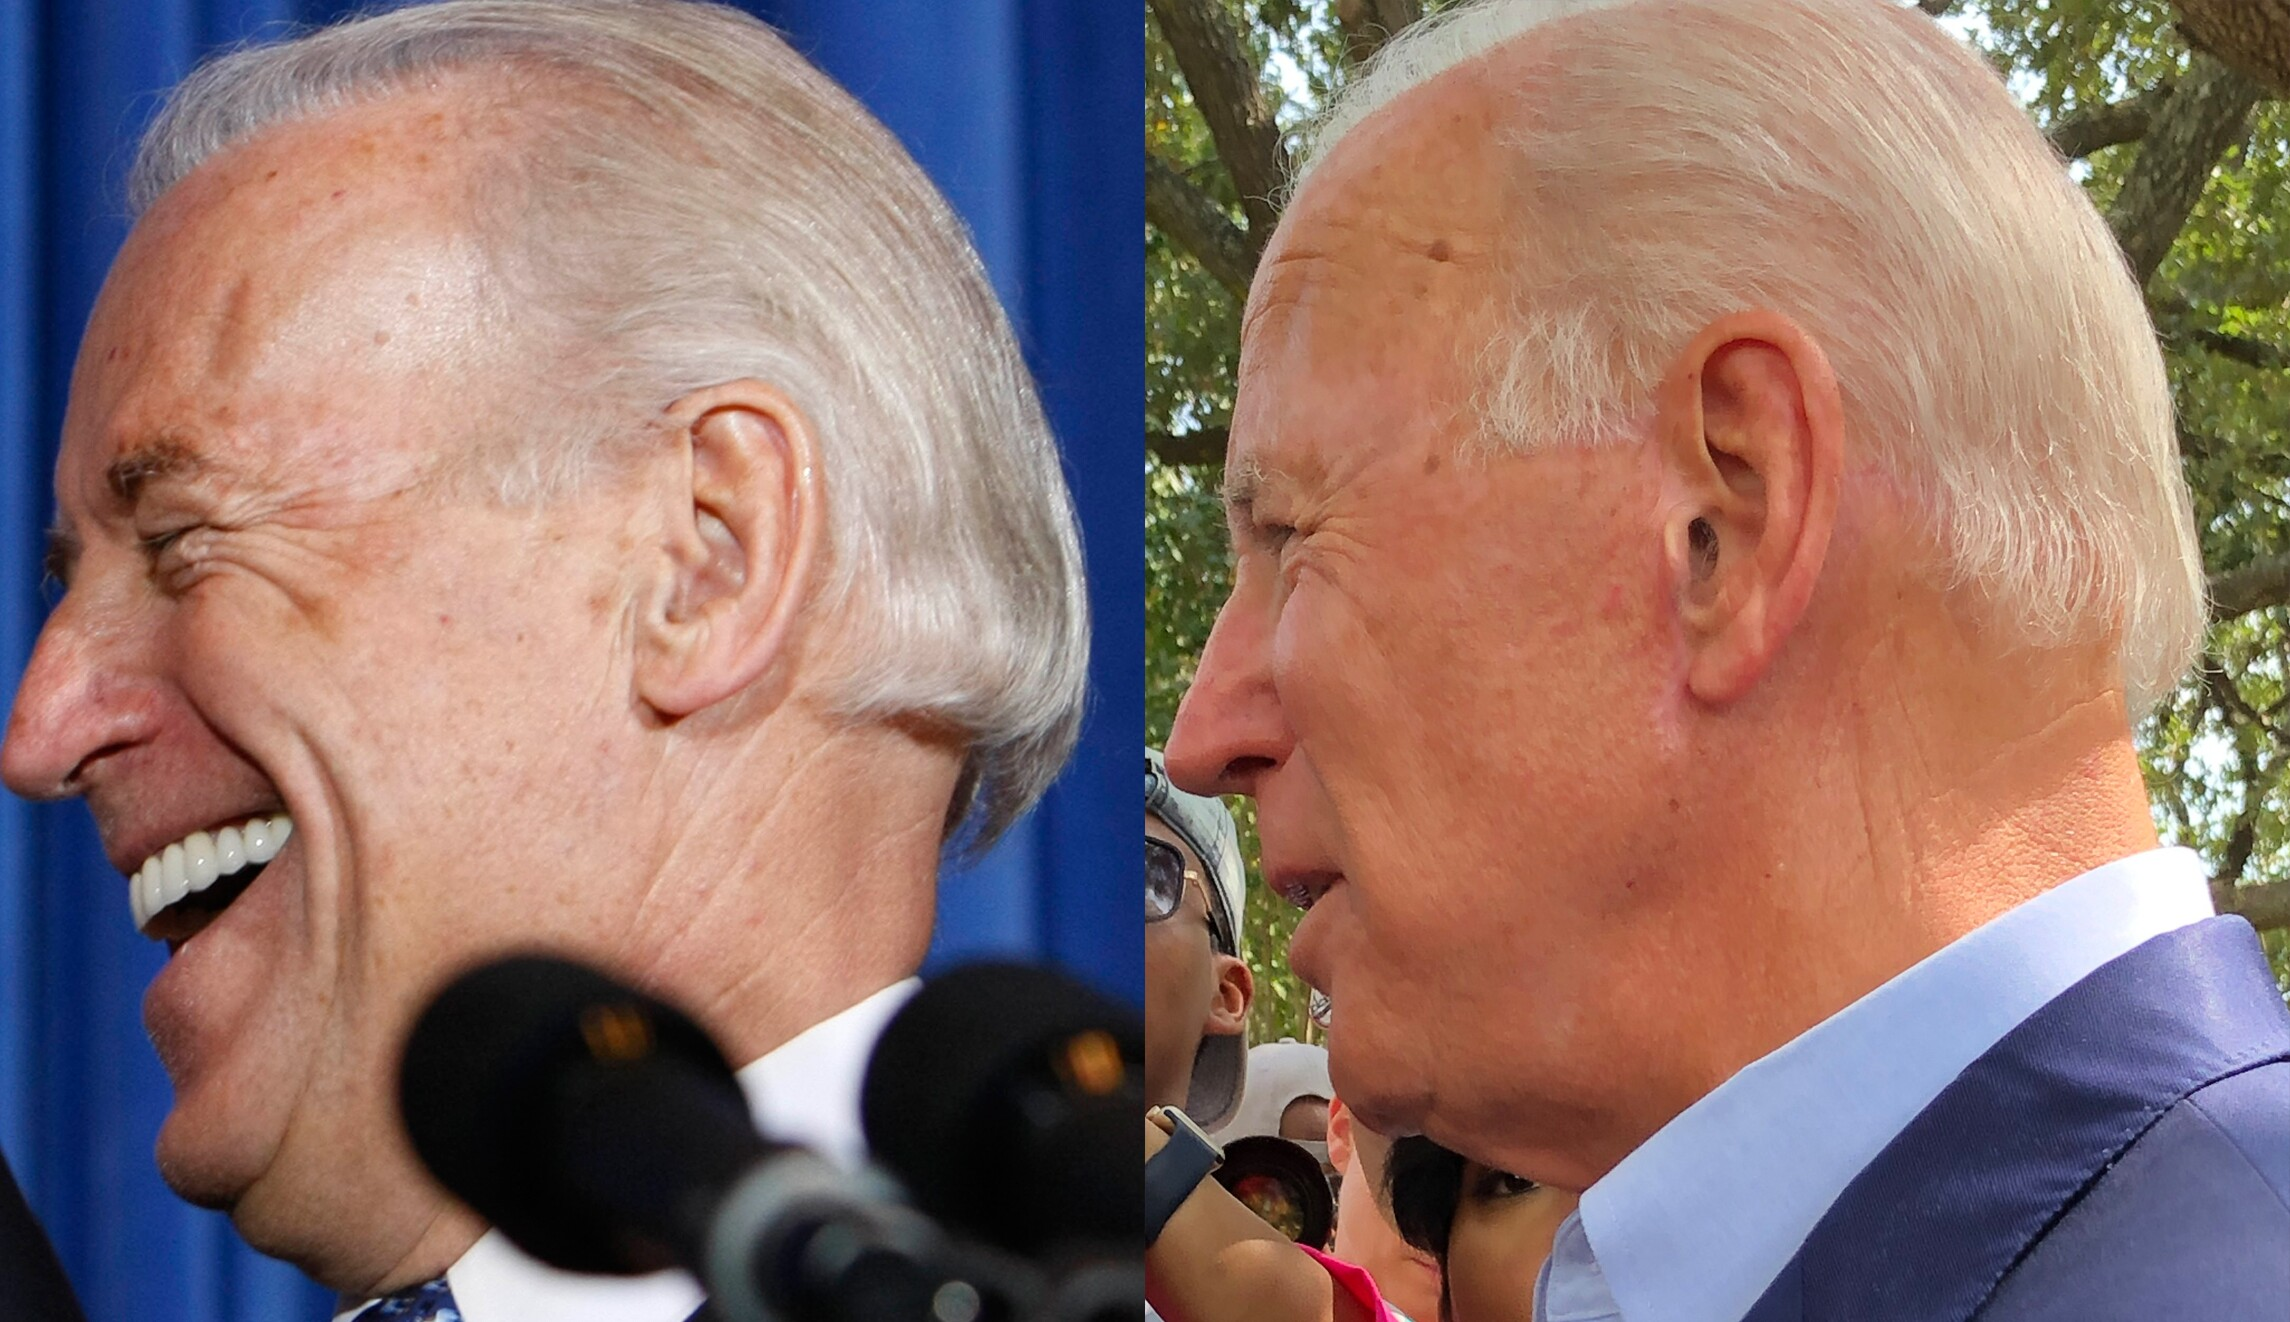 It's obvious': Cosmetic surgeons say Biden had facelift before 2020 campaign